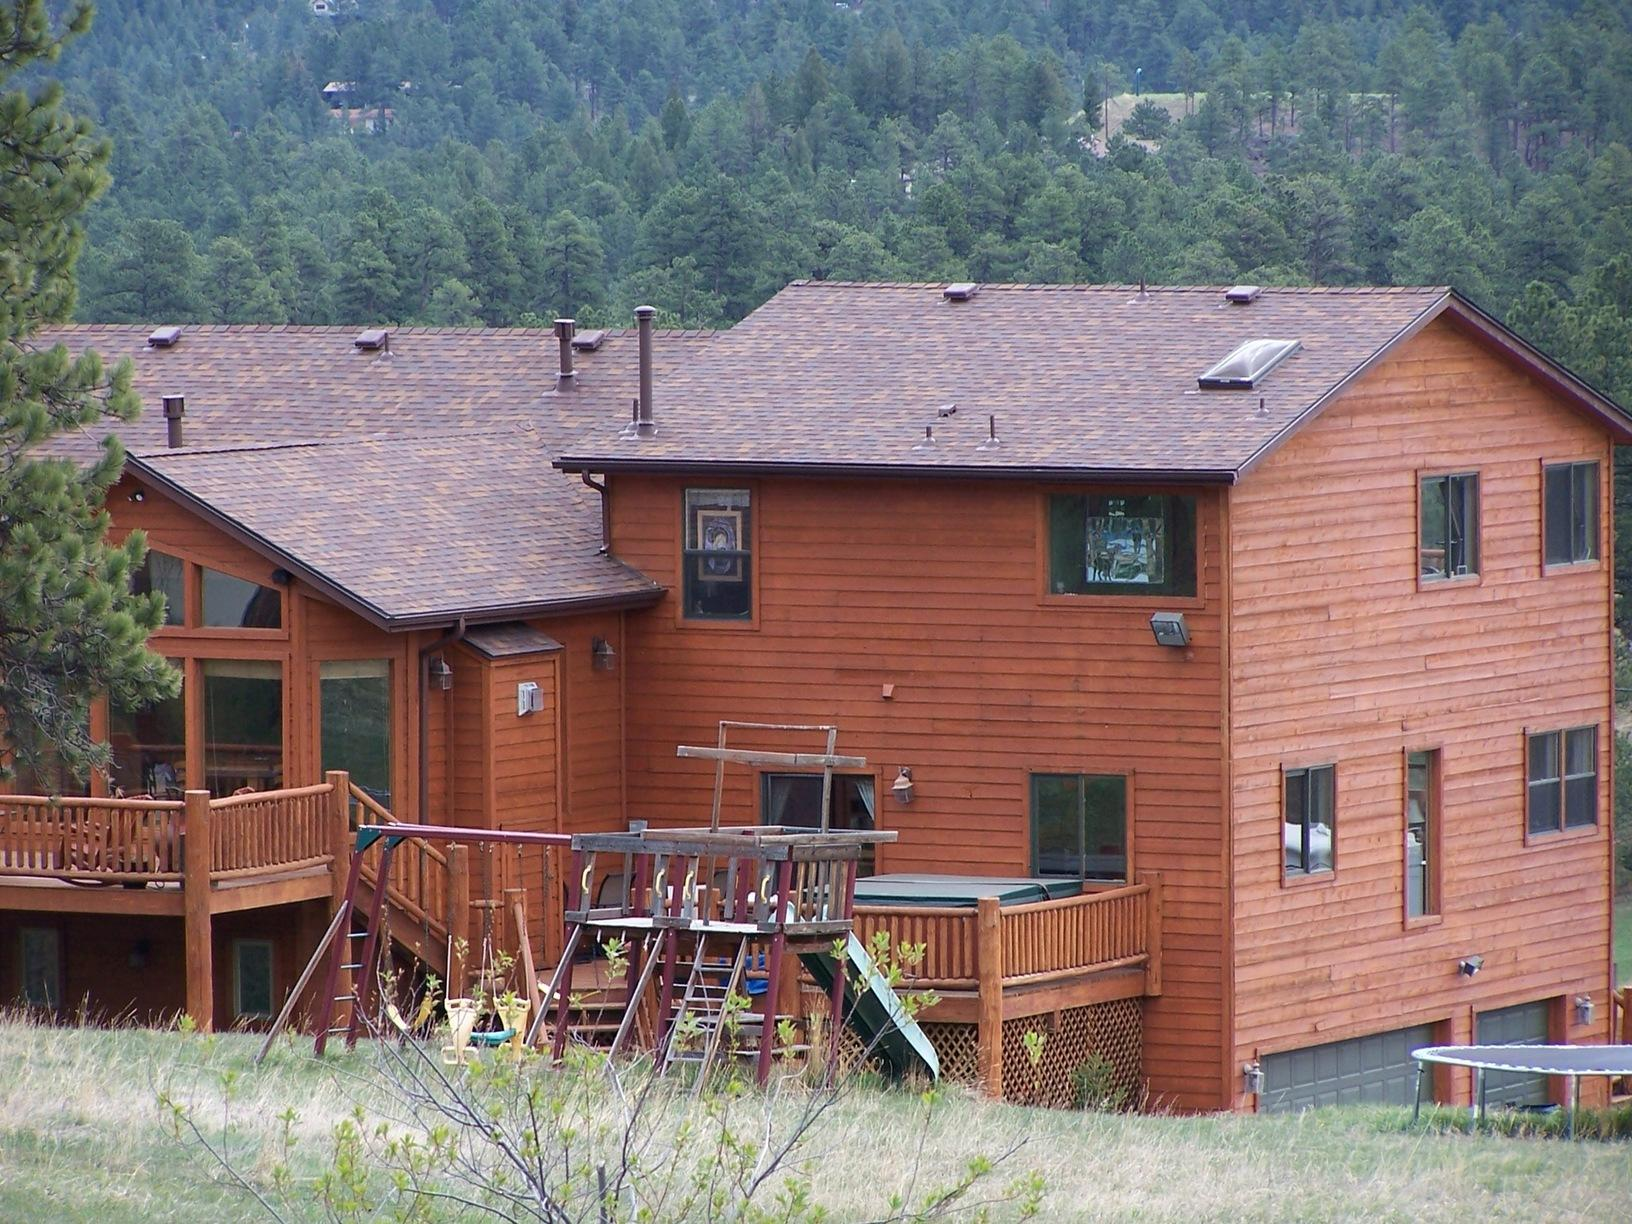 Wood Home Gets a New Roof in Evergreen, CO